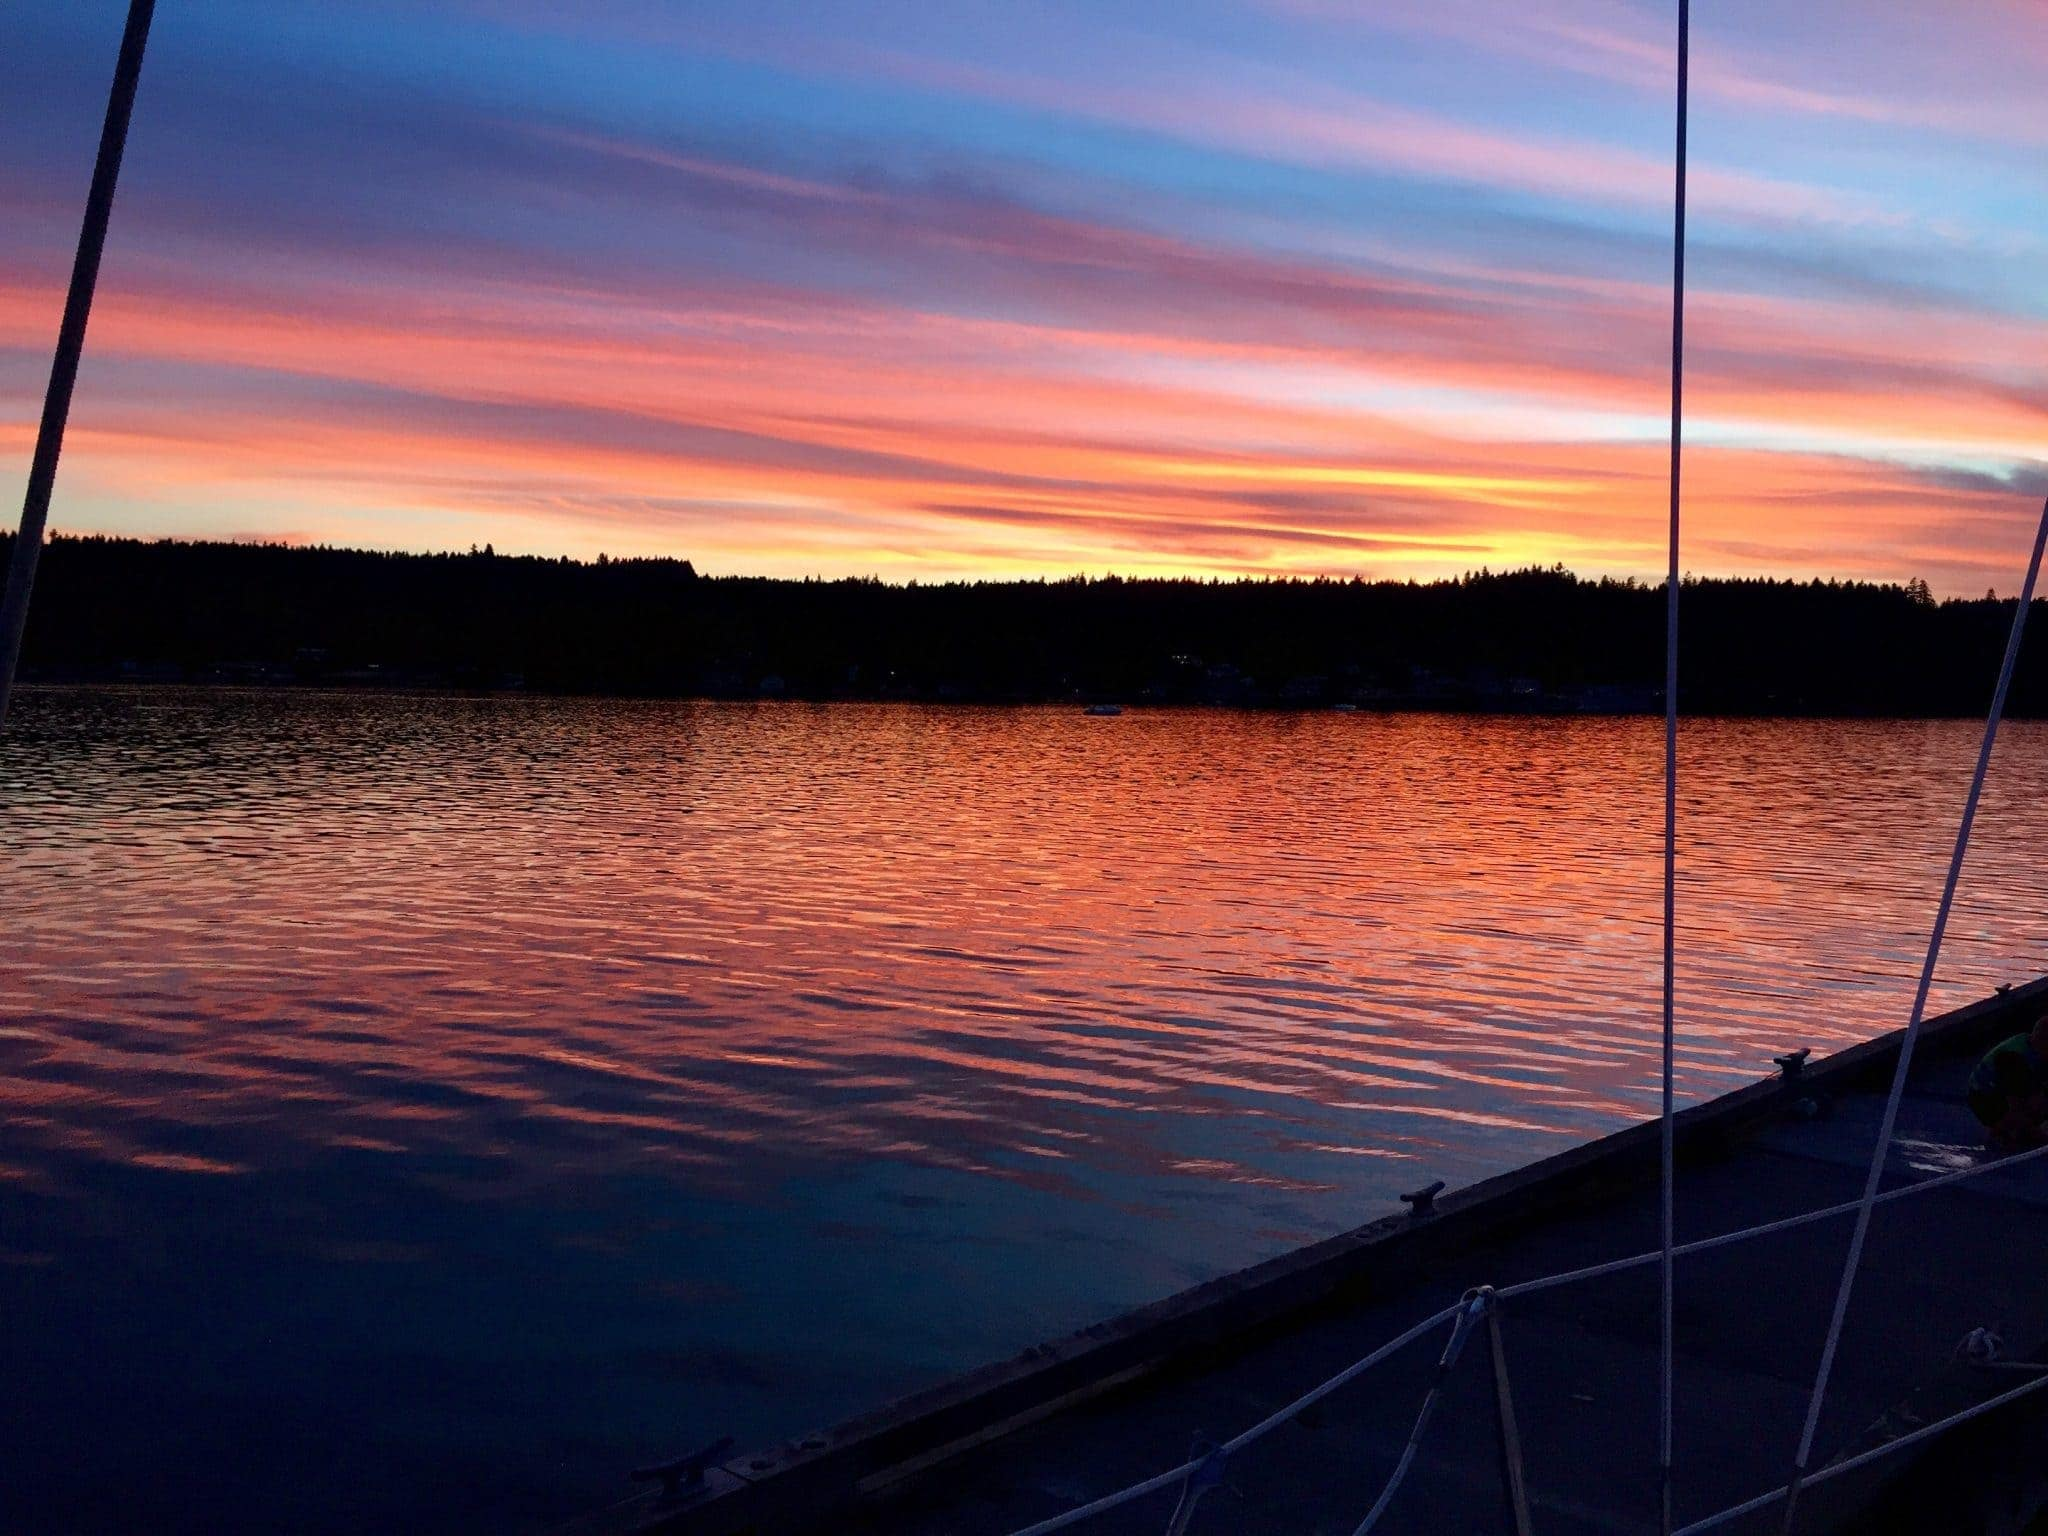 Sunset at Poulsbo